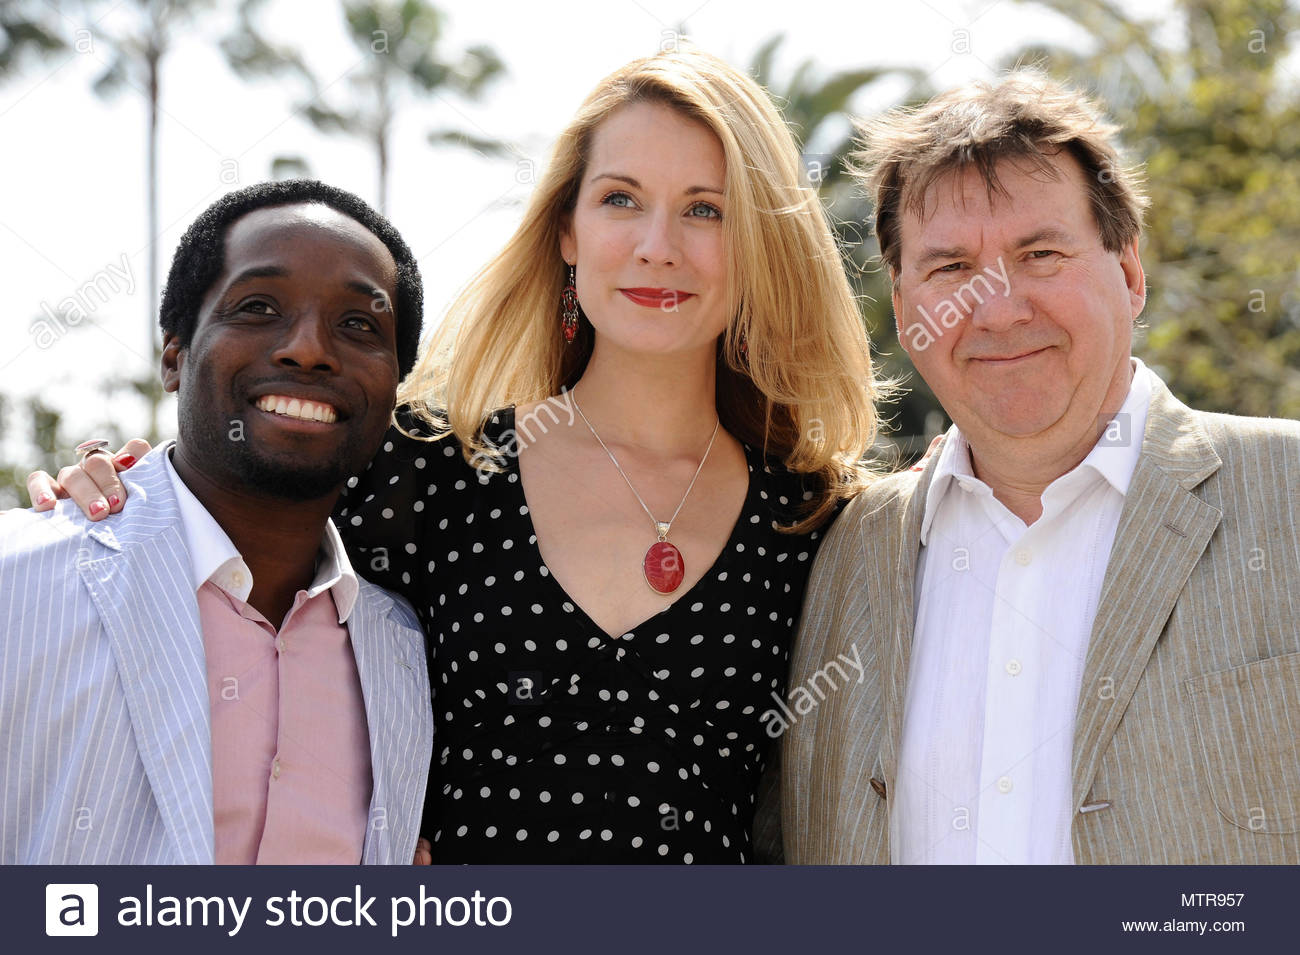 Forum on this topic: Rachel Parris, richard-yearwood/